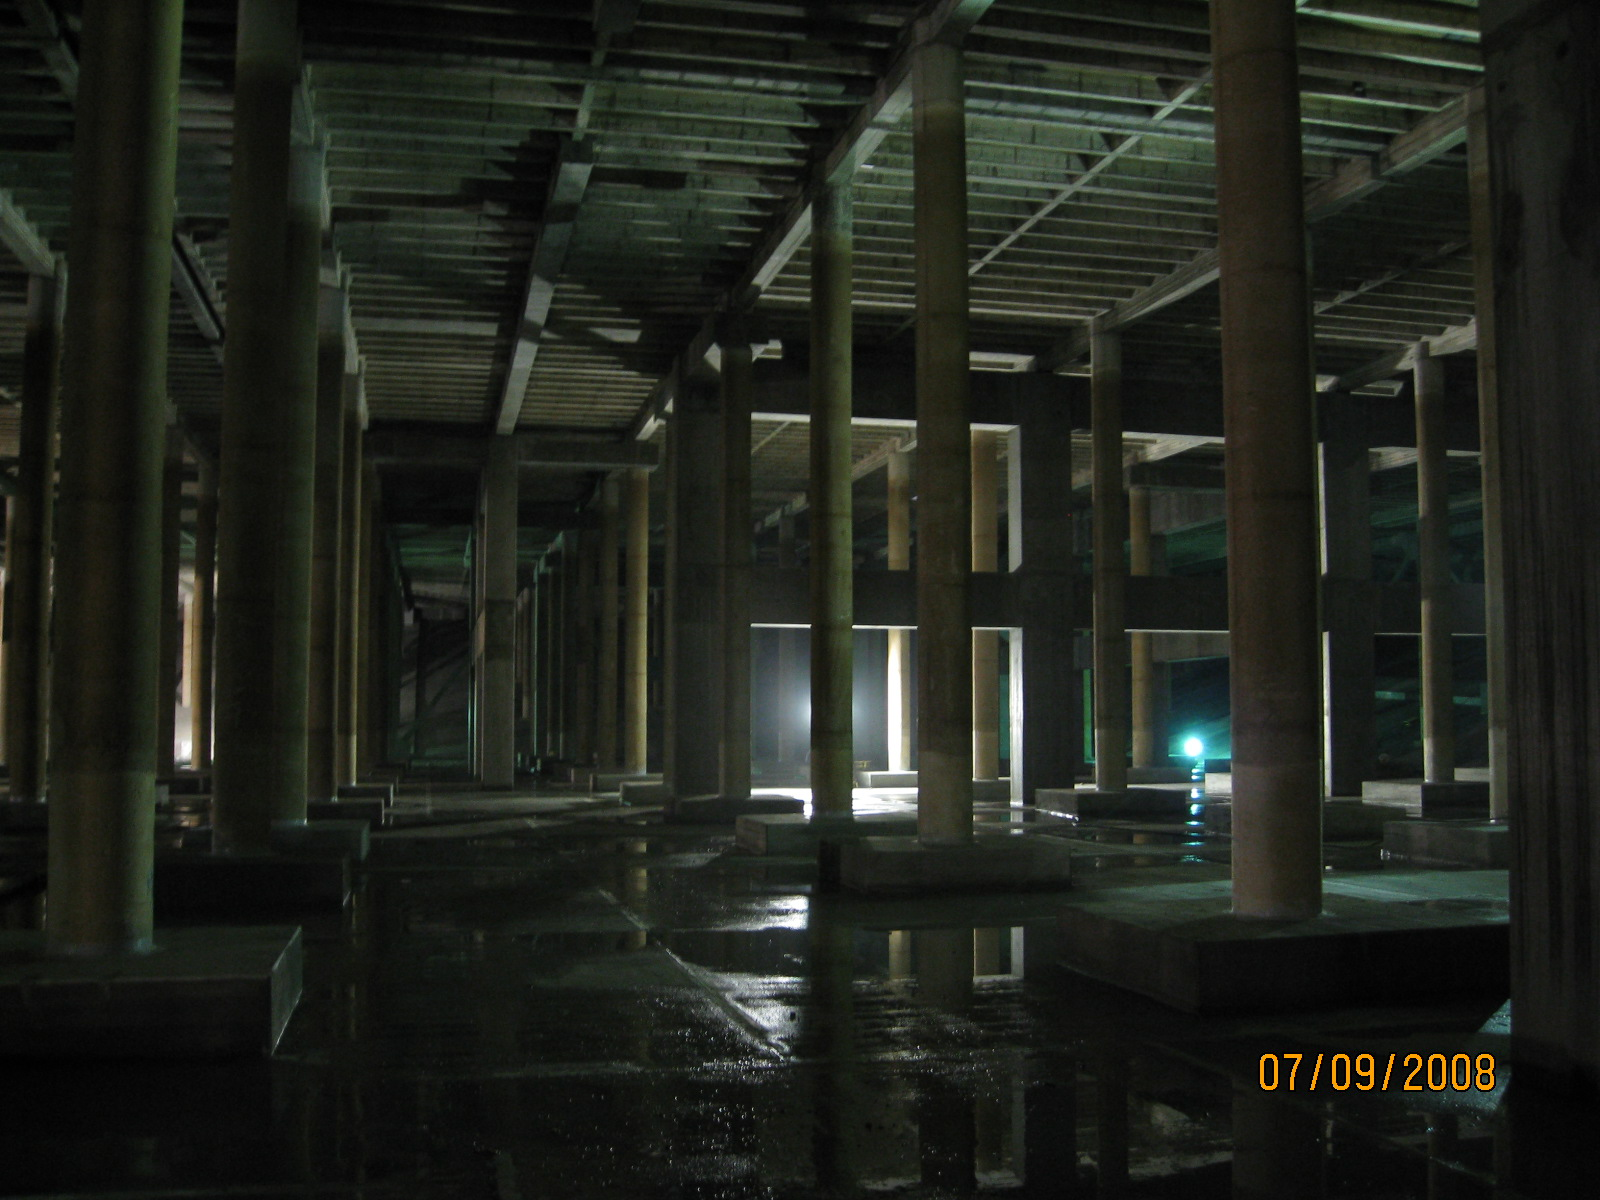 The interior of the rehabilitated Sunset Reservoir.  This project included stabilization of the soil dam embankment; a retrofit of the walls and roof using seismic joints, shear walls, diagonal bracing, and struts; foundation improvements; repairing deteriorated concrete; replacing part of the reservoir lining material; replacing inlet piping; installing security fencing; upgrading the landscaping; and other miscellaneous site improvements.